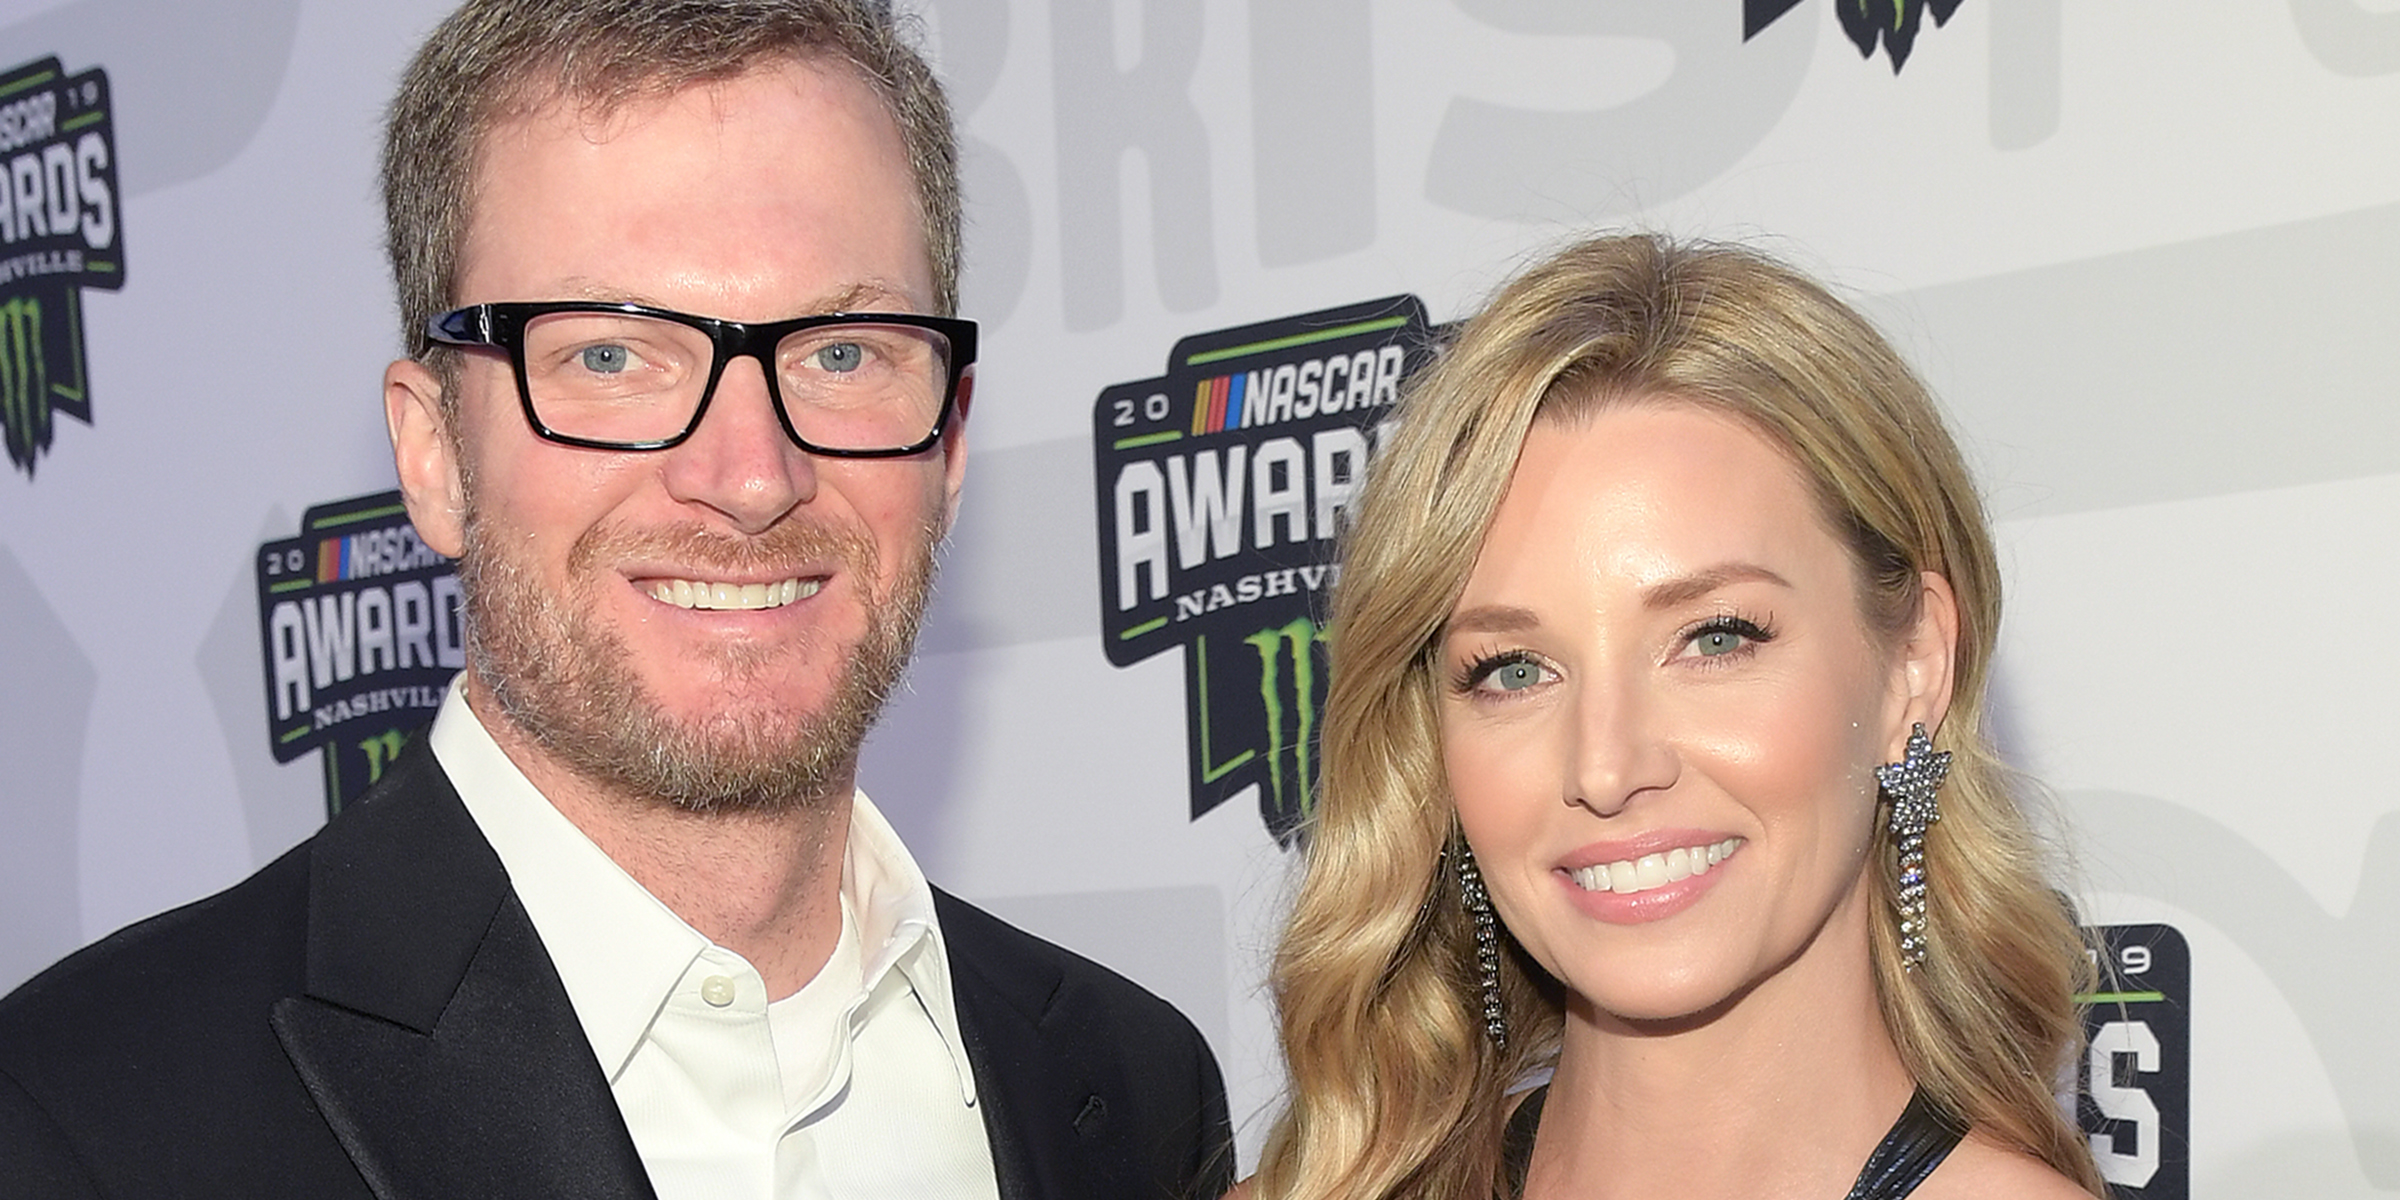 Dale Earnhardt Jr Gives Update On Wife S Pregnancy During Coronavirus Pandemic Jump to navigation jump to search. https www today com parents dale earnhardt jr gives update wife s pregnancy during coronavirus t178133